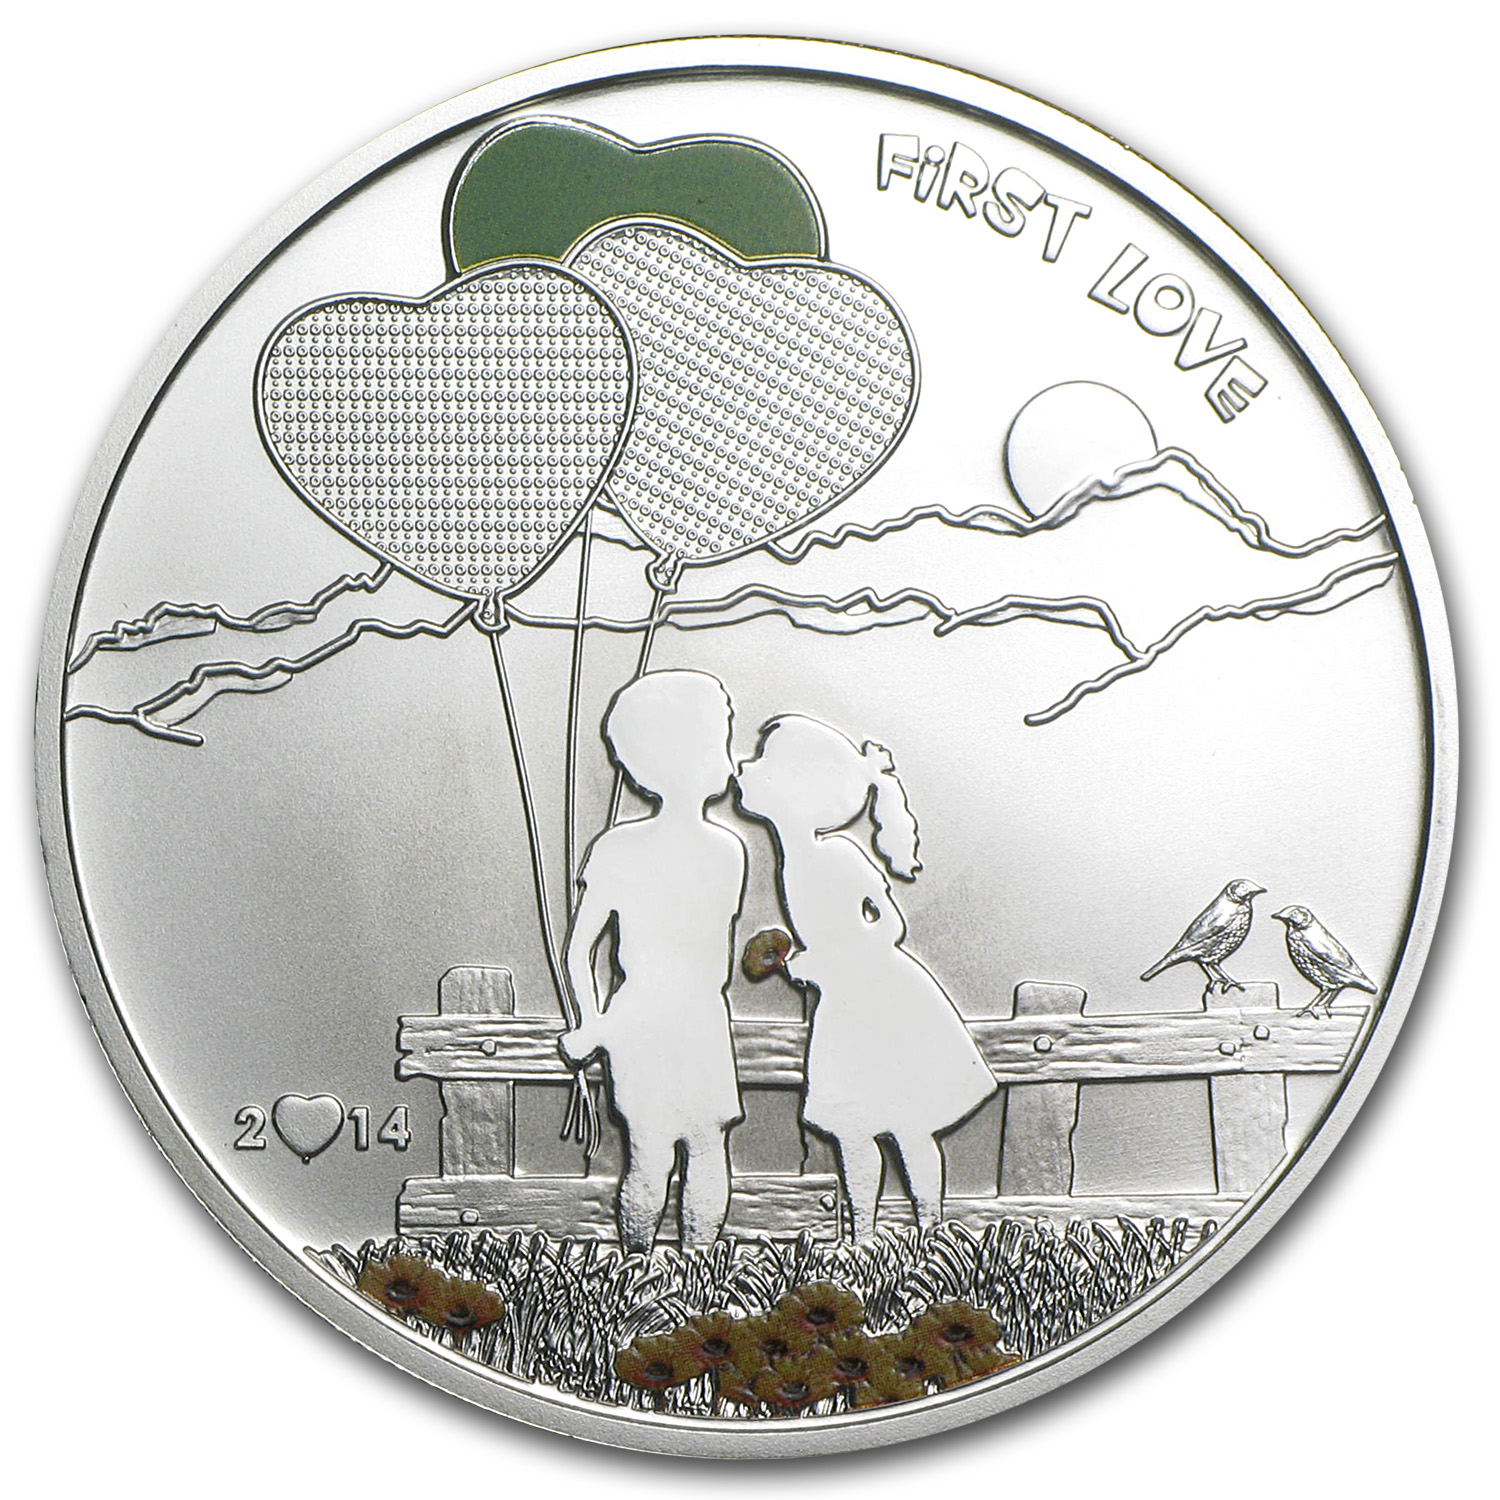 Cook Islands 2014 Silver Proof Paint Your Coin - First Love